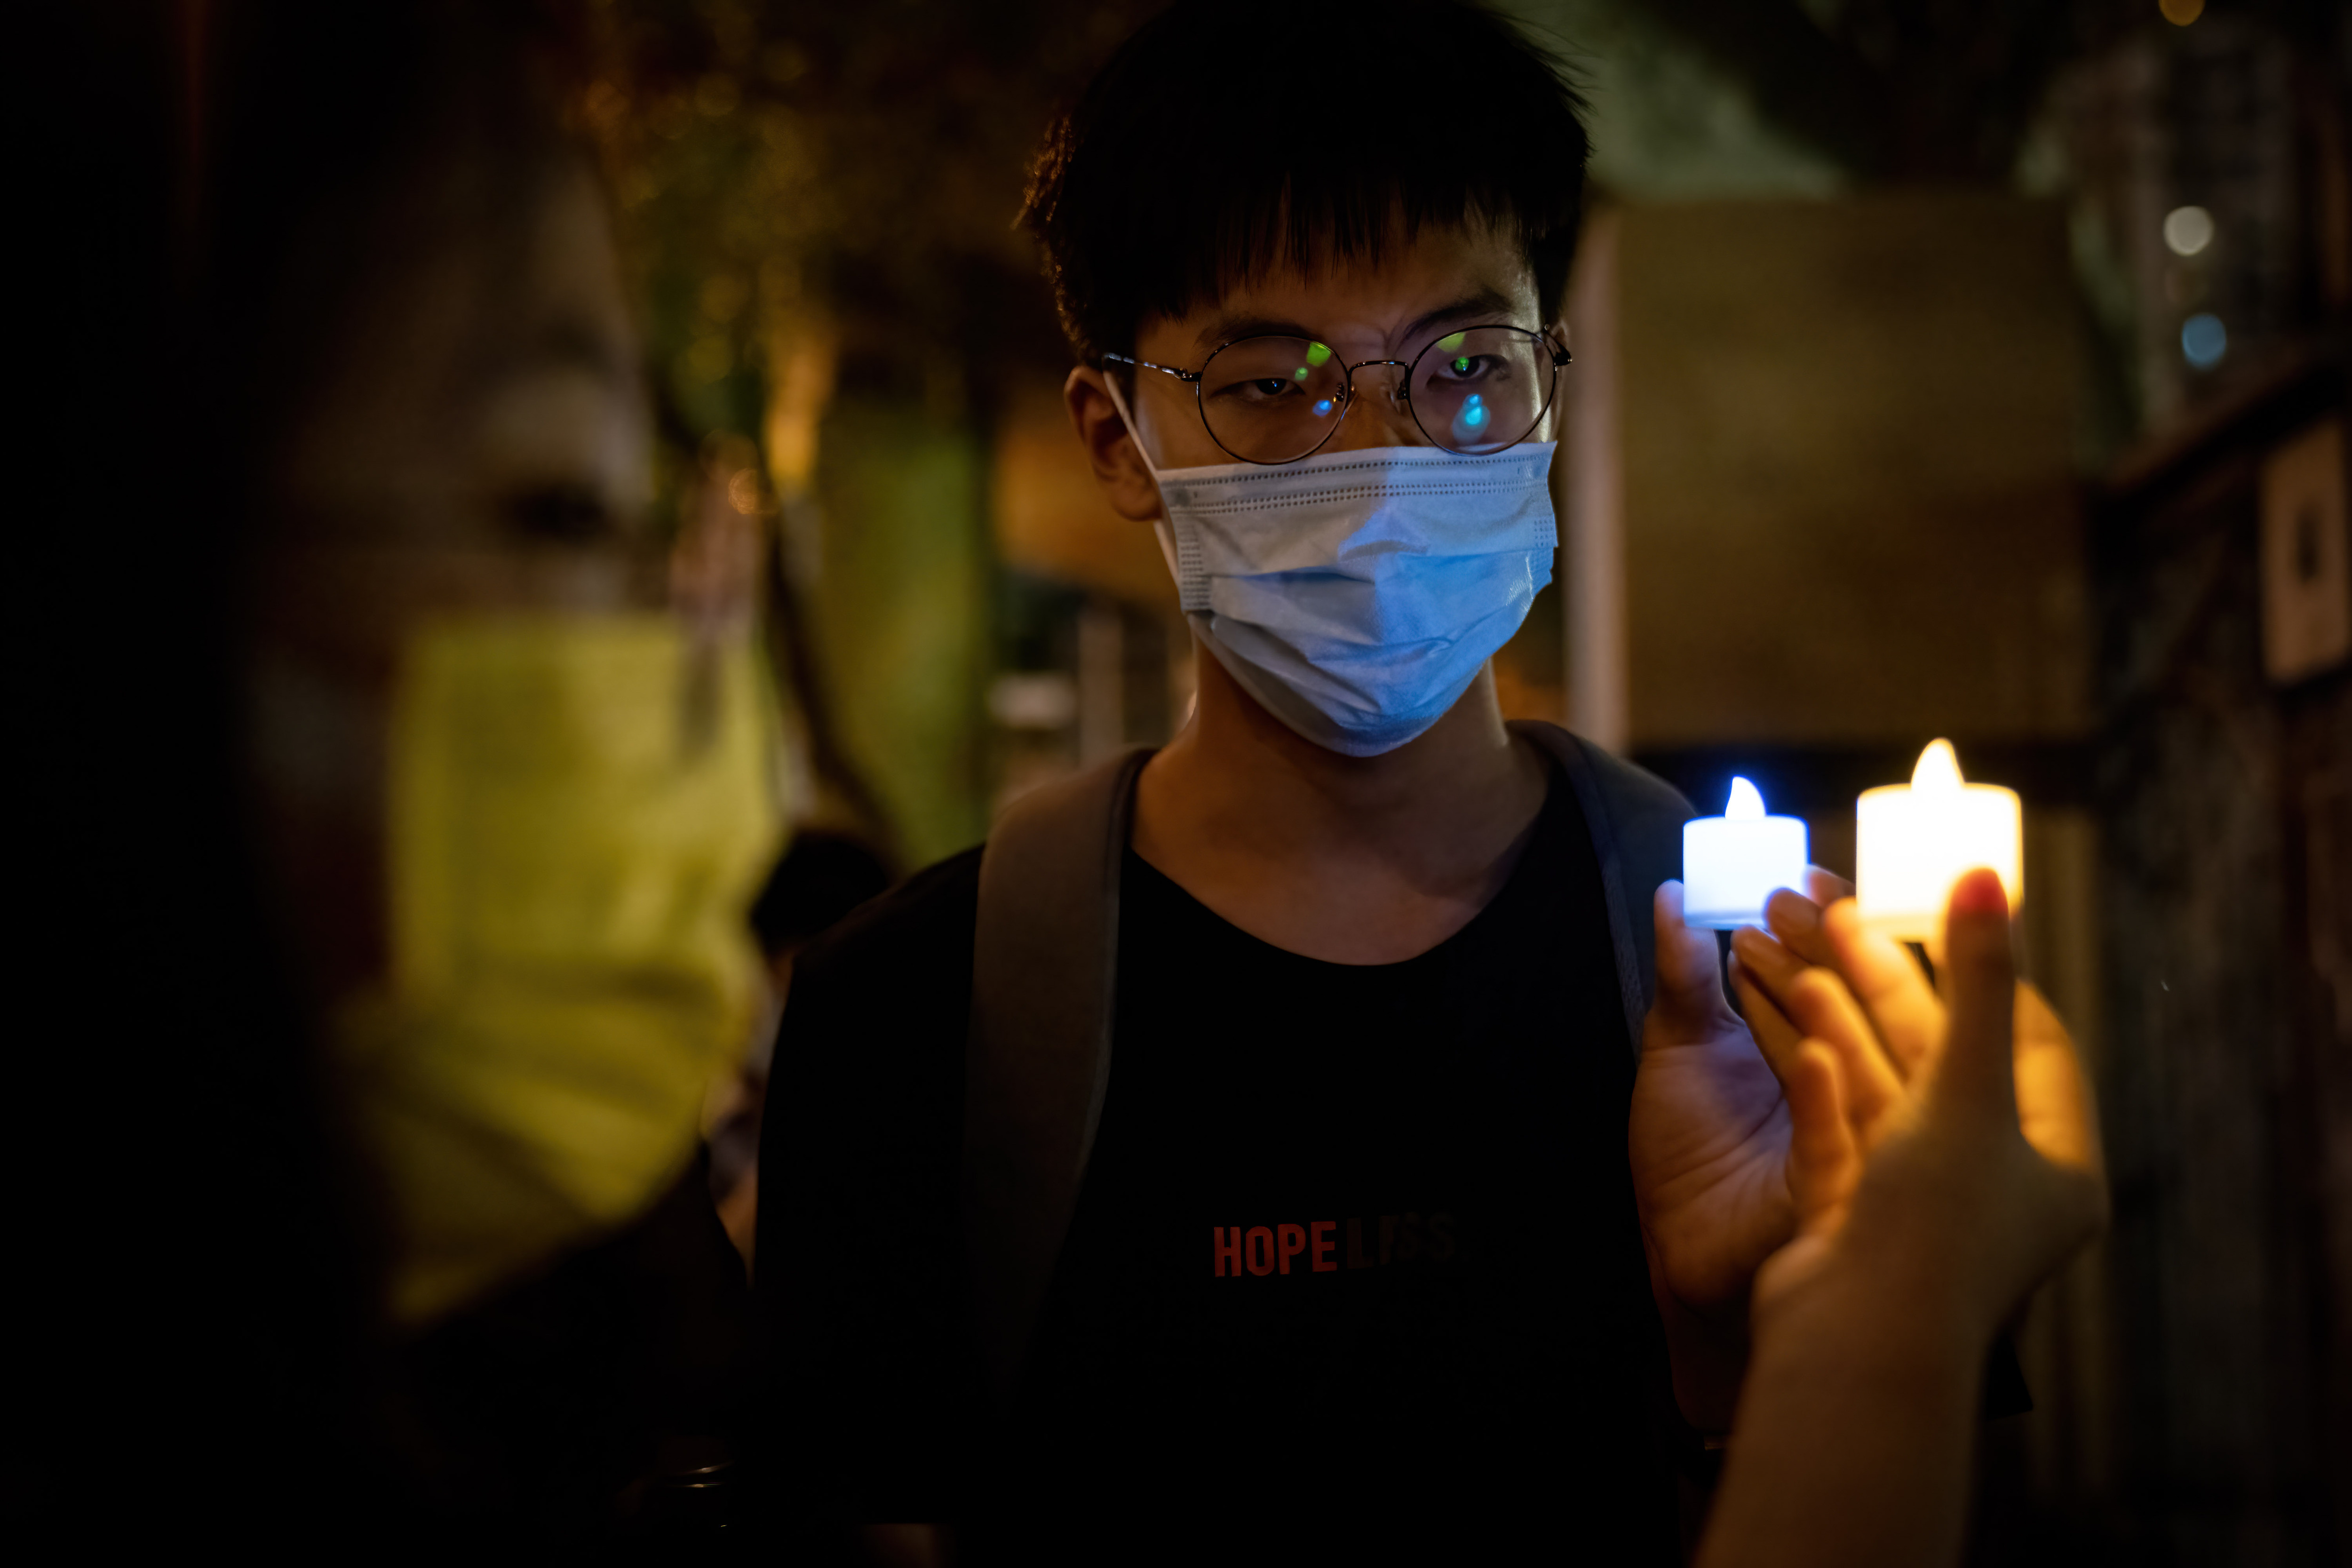 A man holds a burning candle as part of the small protests by Hong Kong people during the Tiananmen Square anniversary.